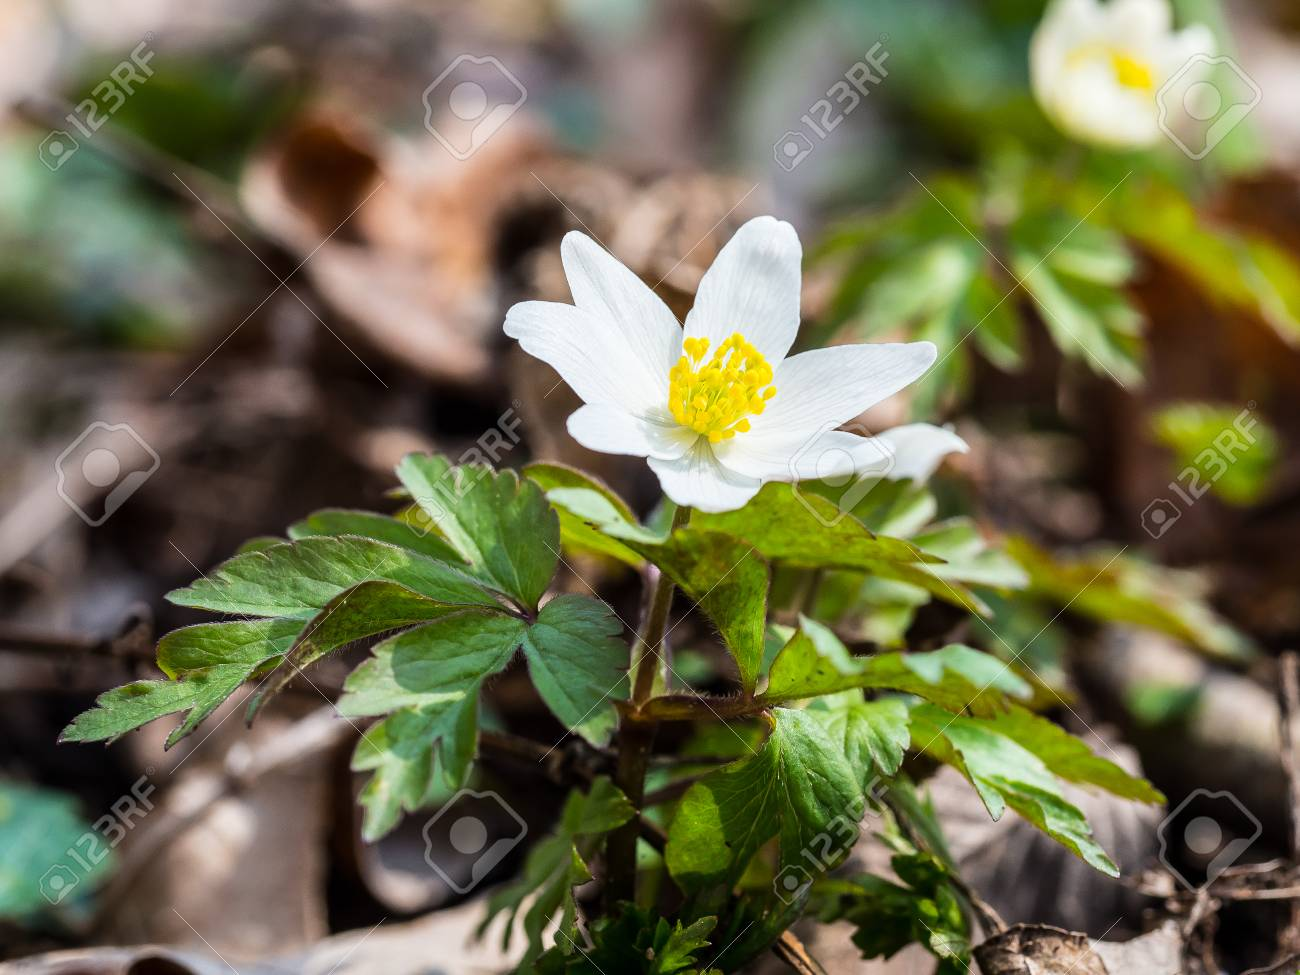 Anemone Nemorosa Is An Early Spring Flowering Plant In The Buttercup